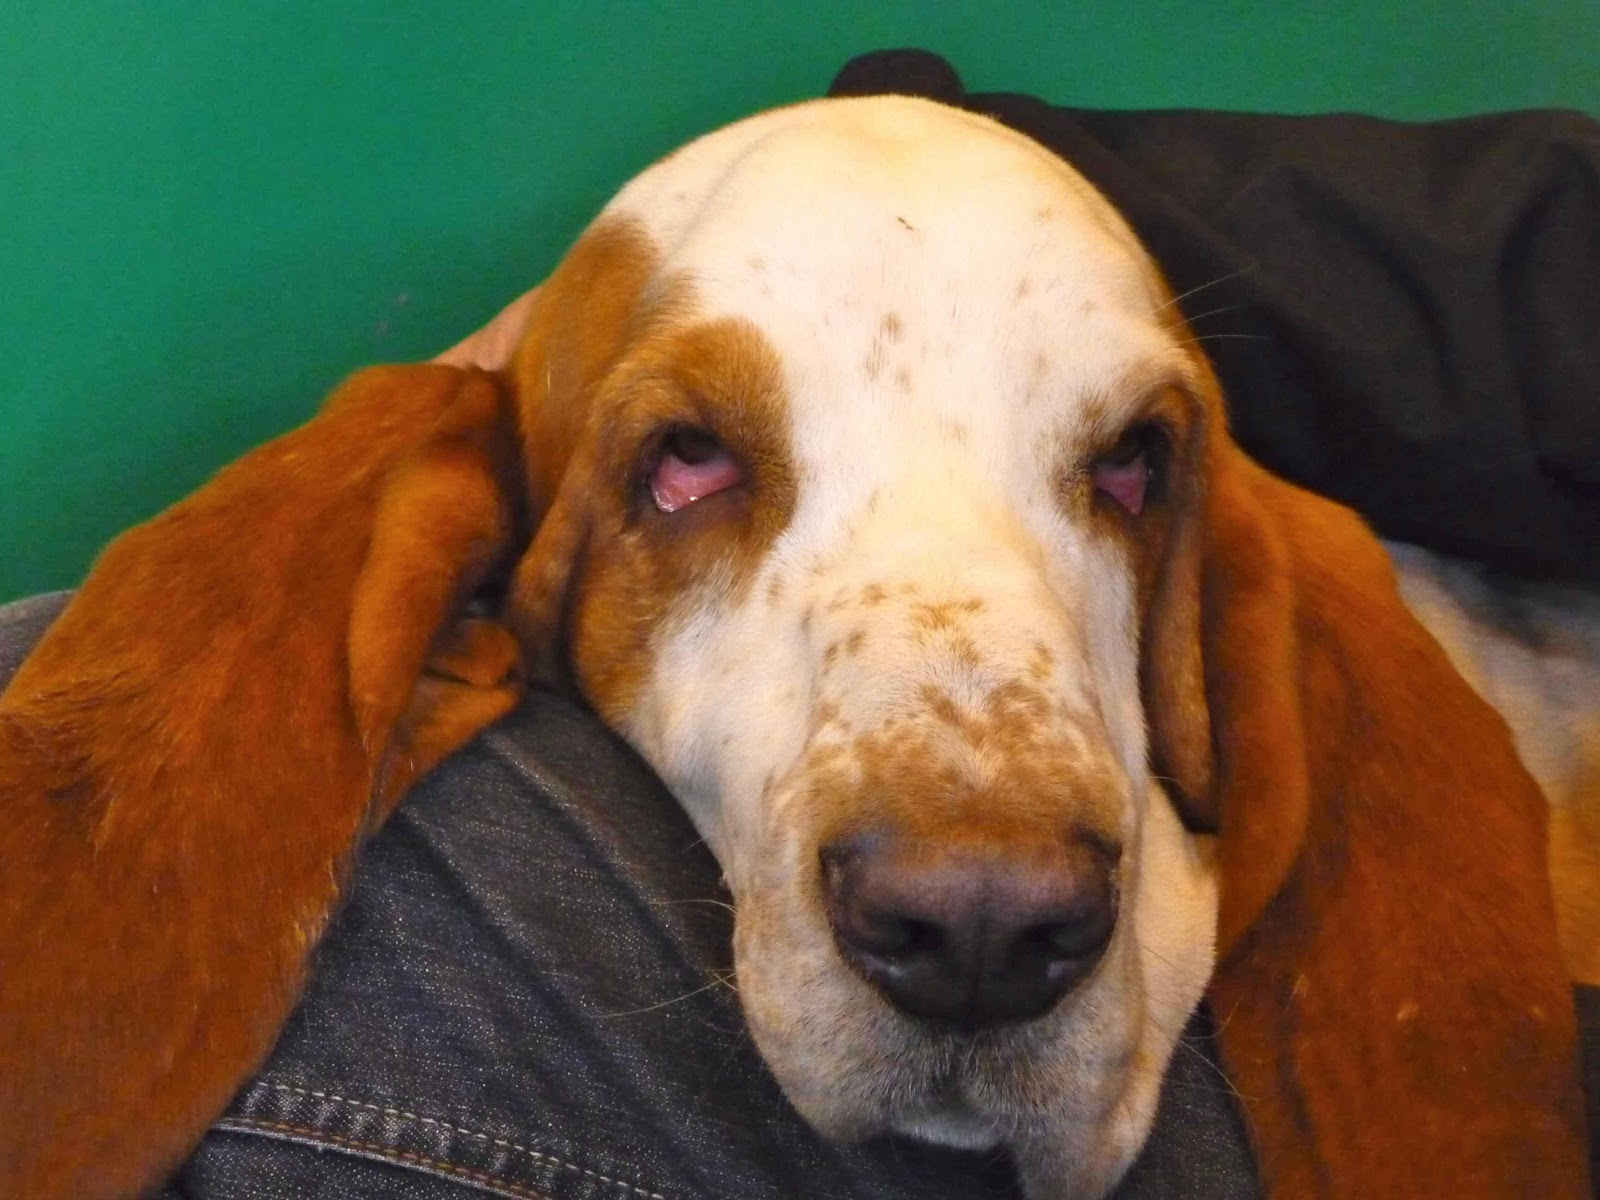 Pedigree Dogs Exposed - The Blog: Basset hounds... an eye on the future